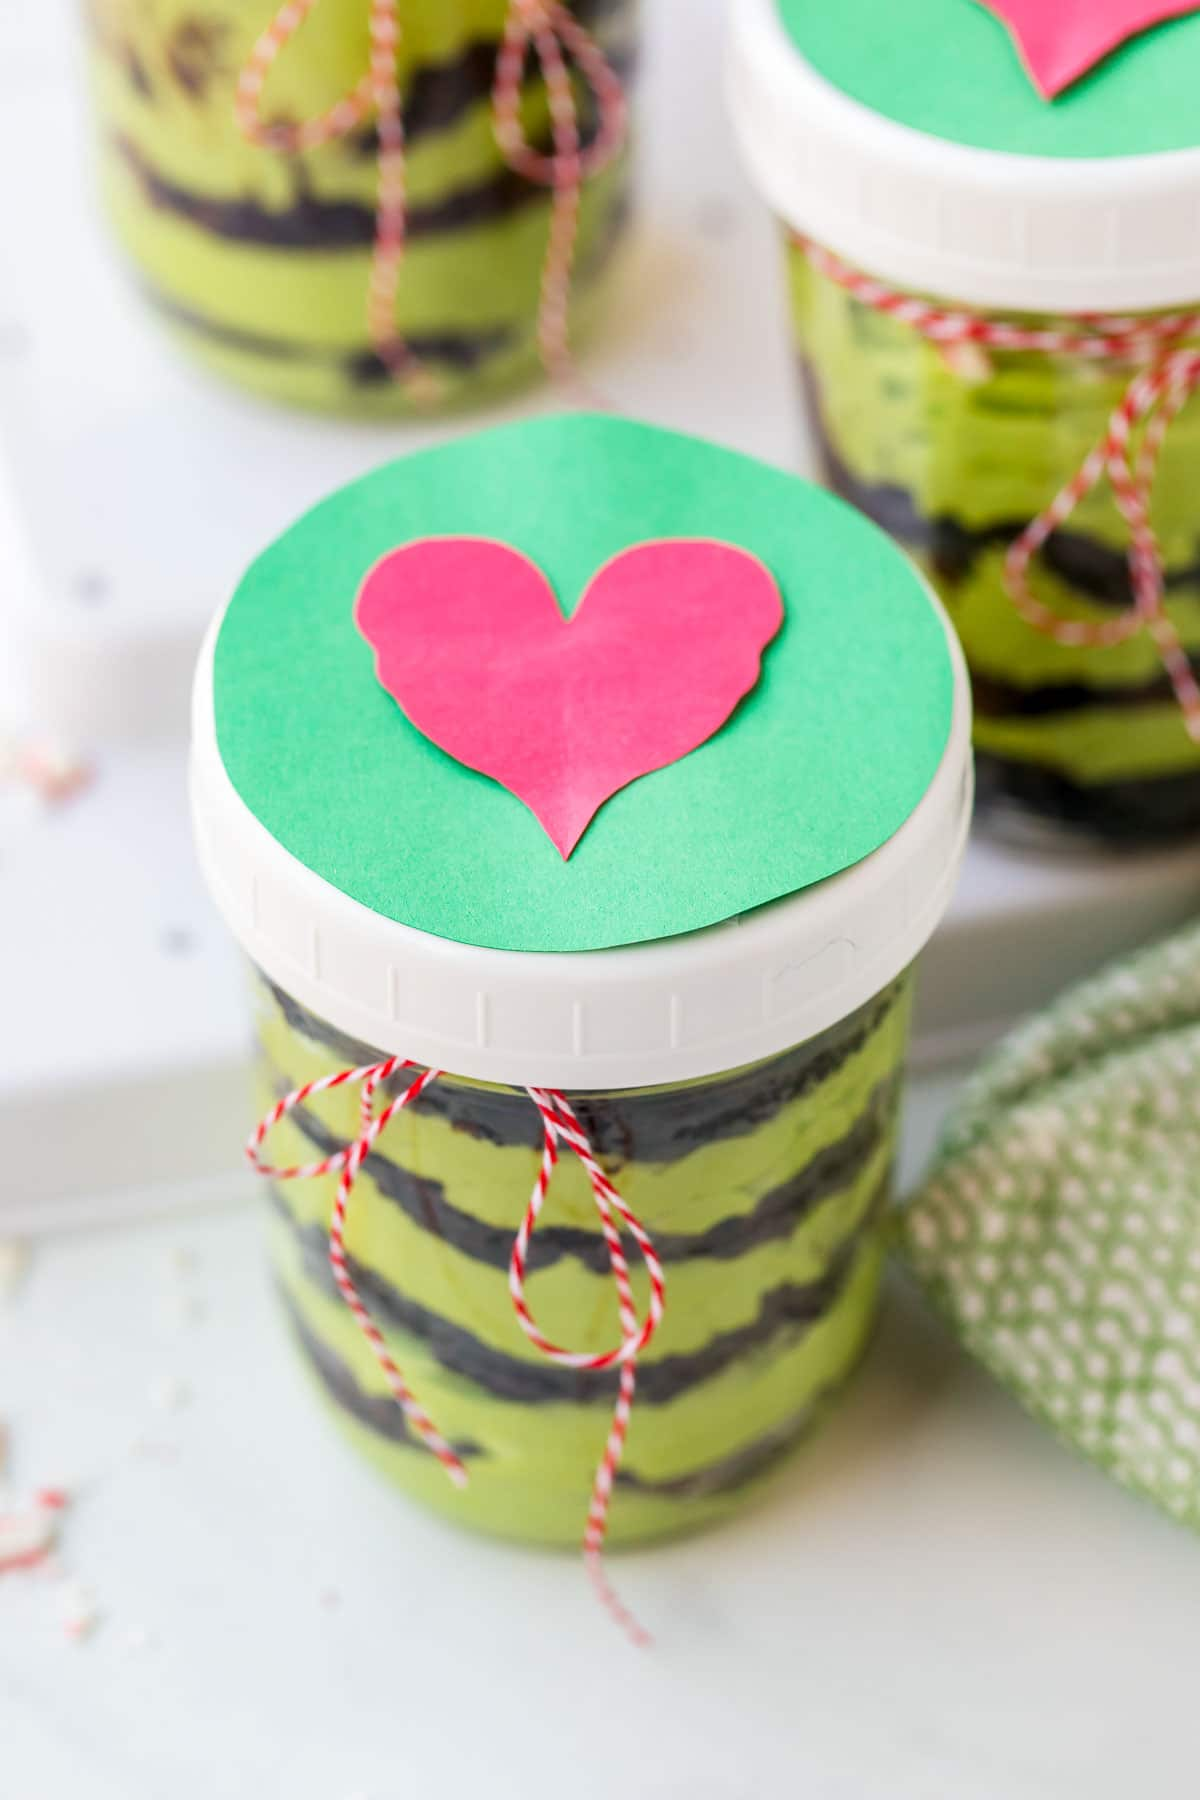 grinch cake heart lid